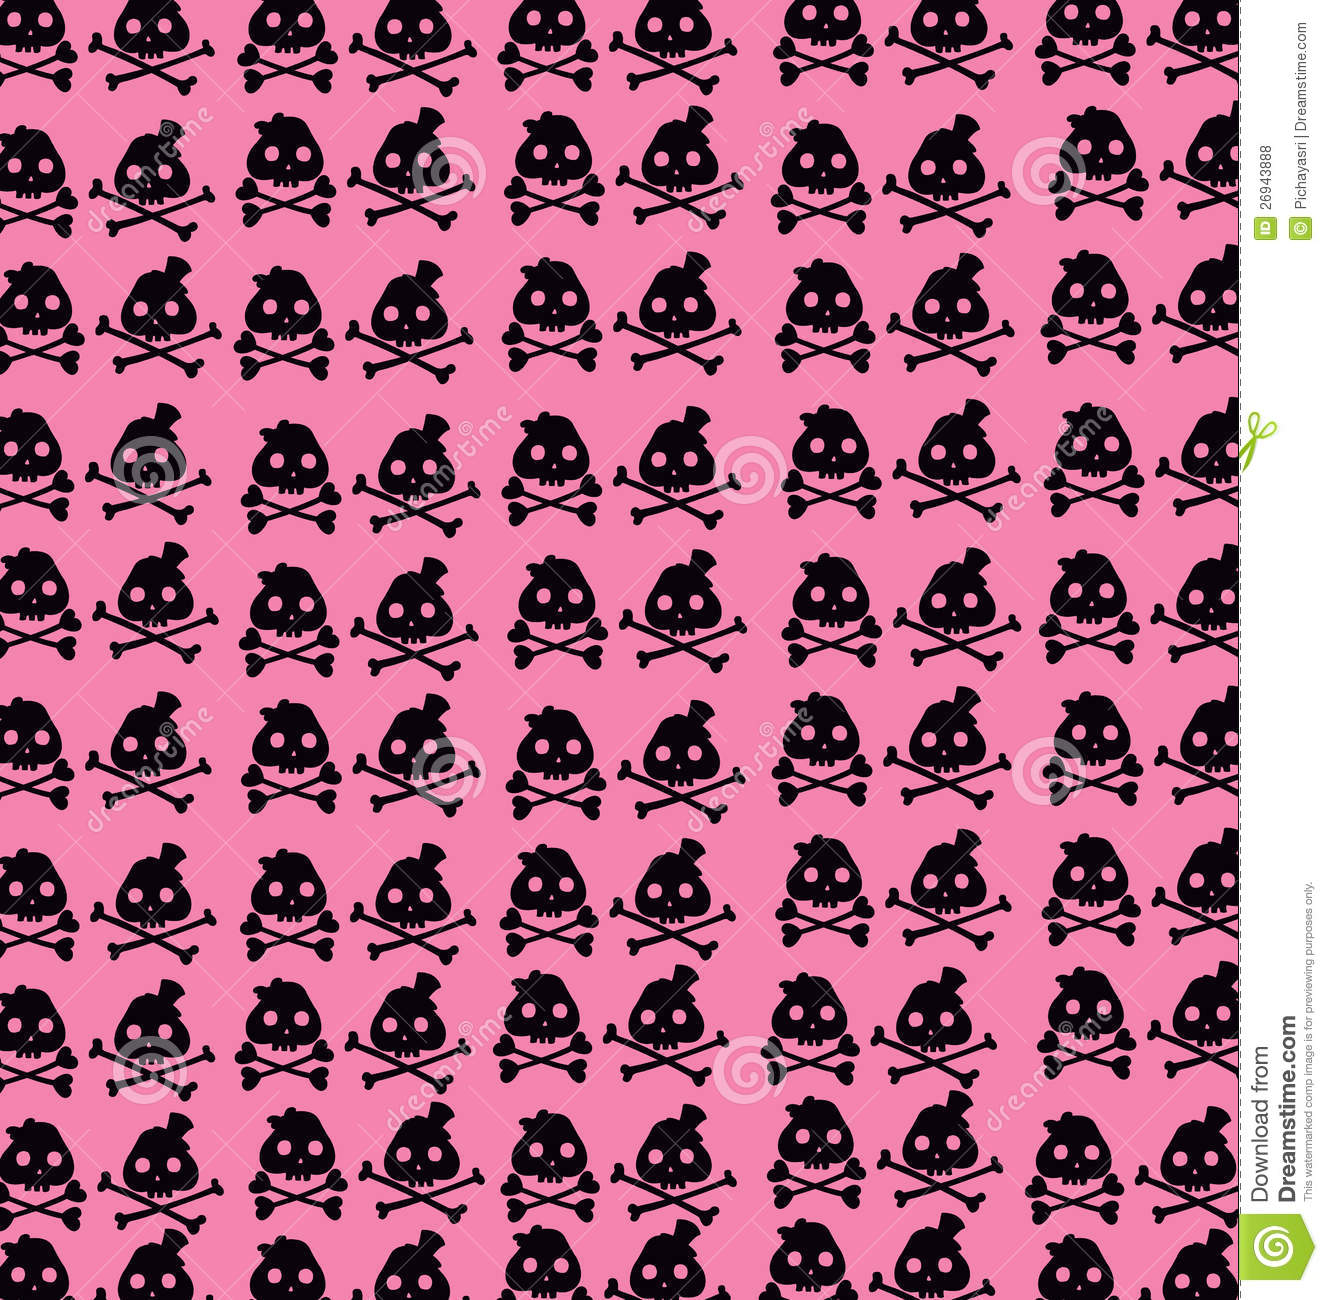 Wallpaper Black Skulls On Pink Background Stock Vector